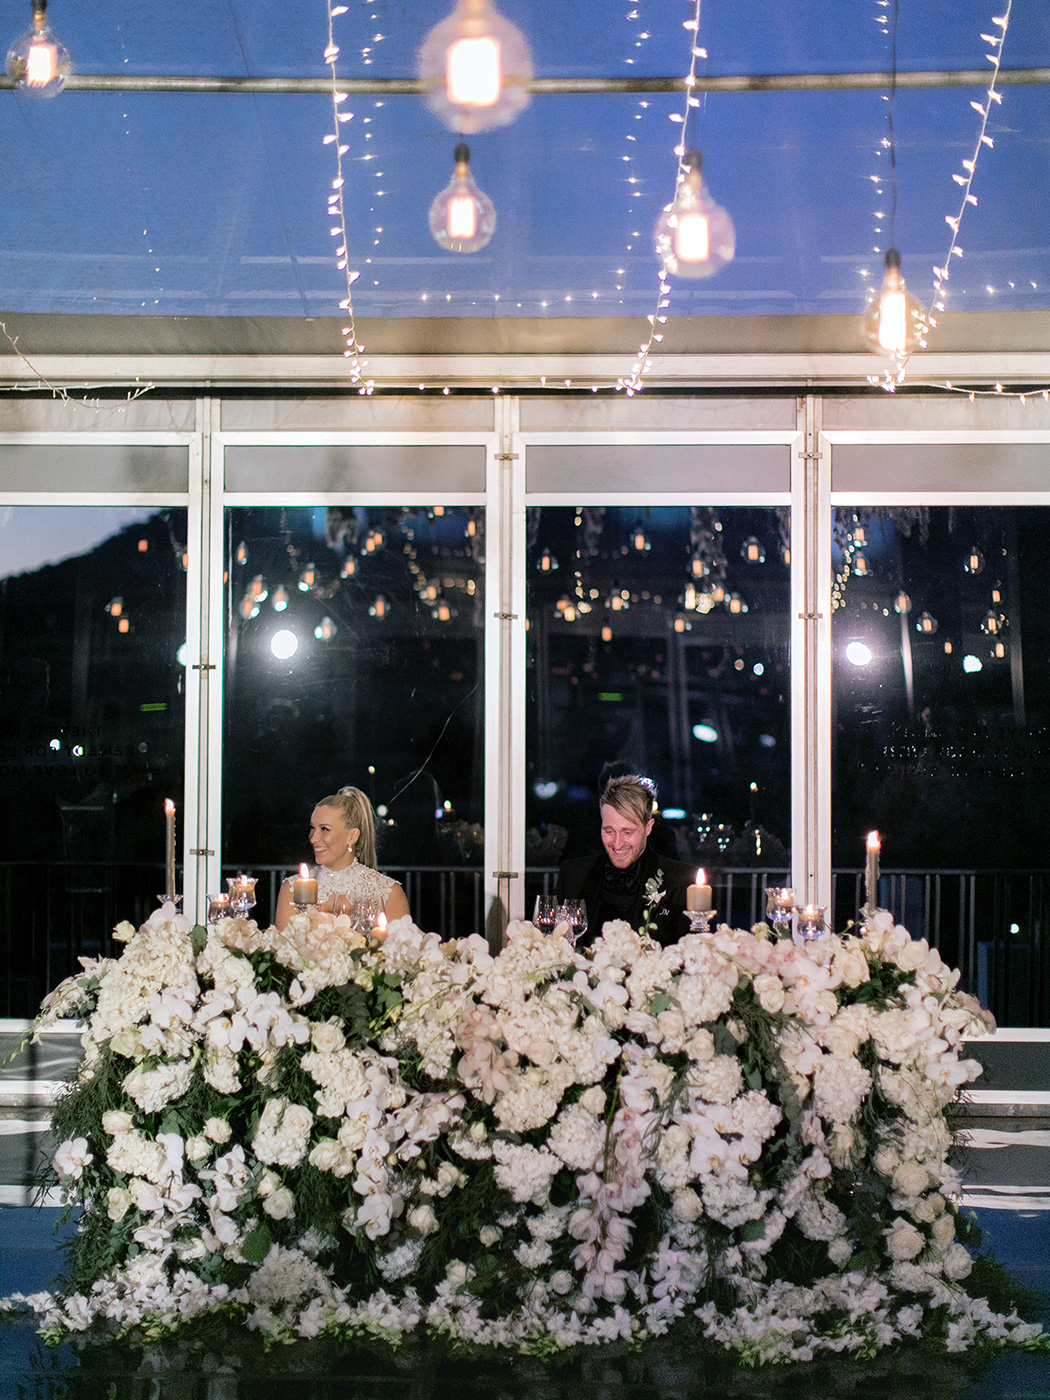 Reception | Rensche Mari Photography